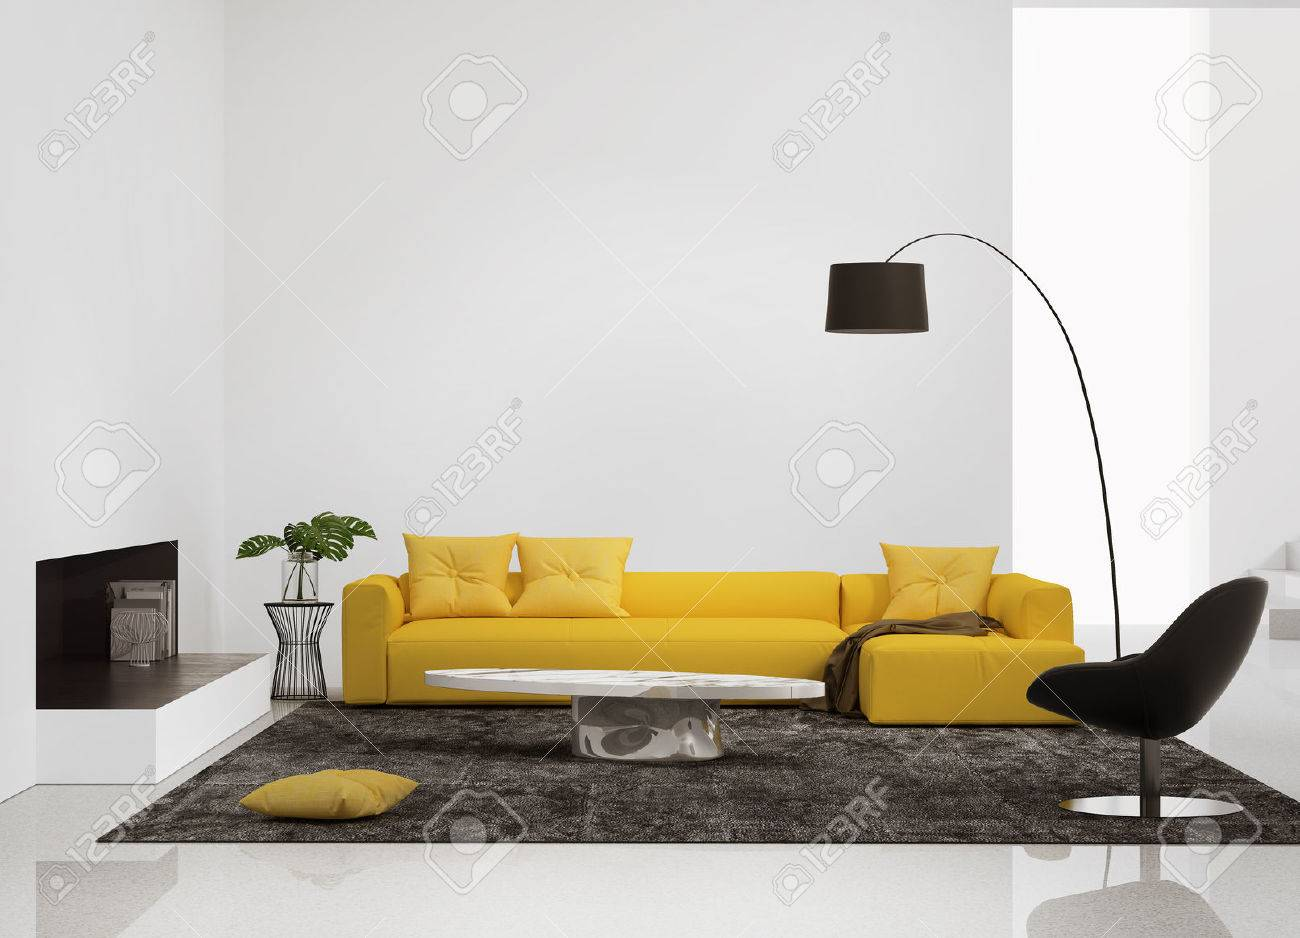 Modern Interior With A Yellow Sofa In The Living Room And A Leather